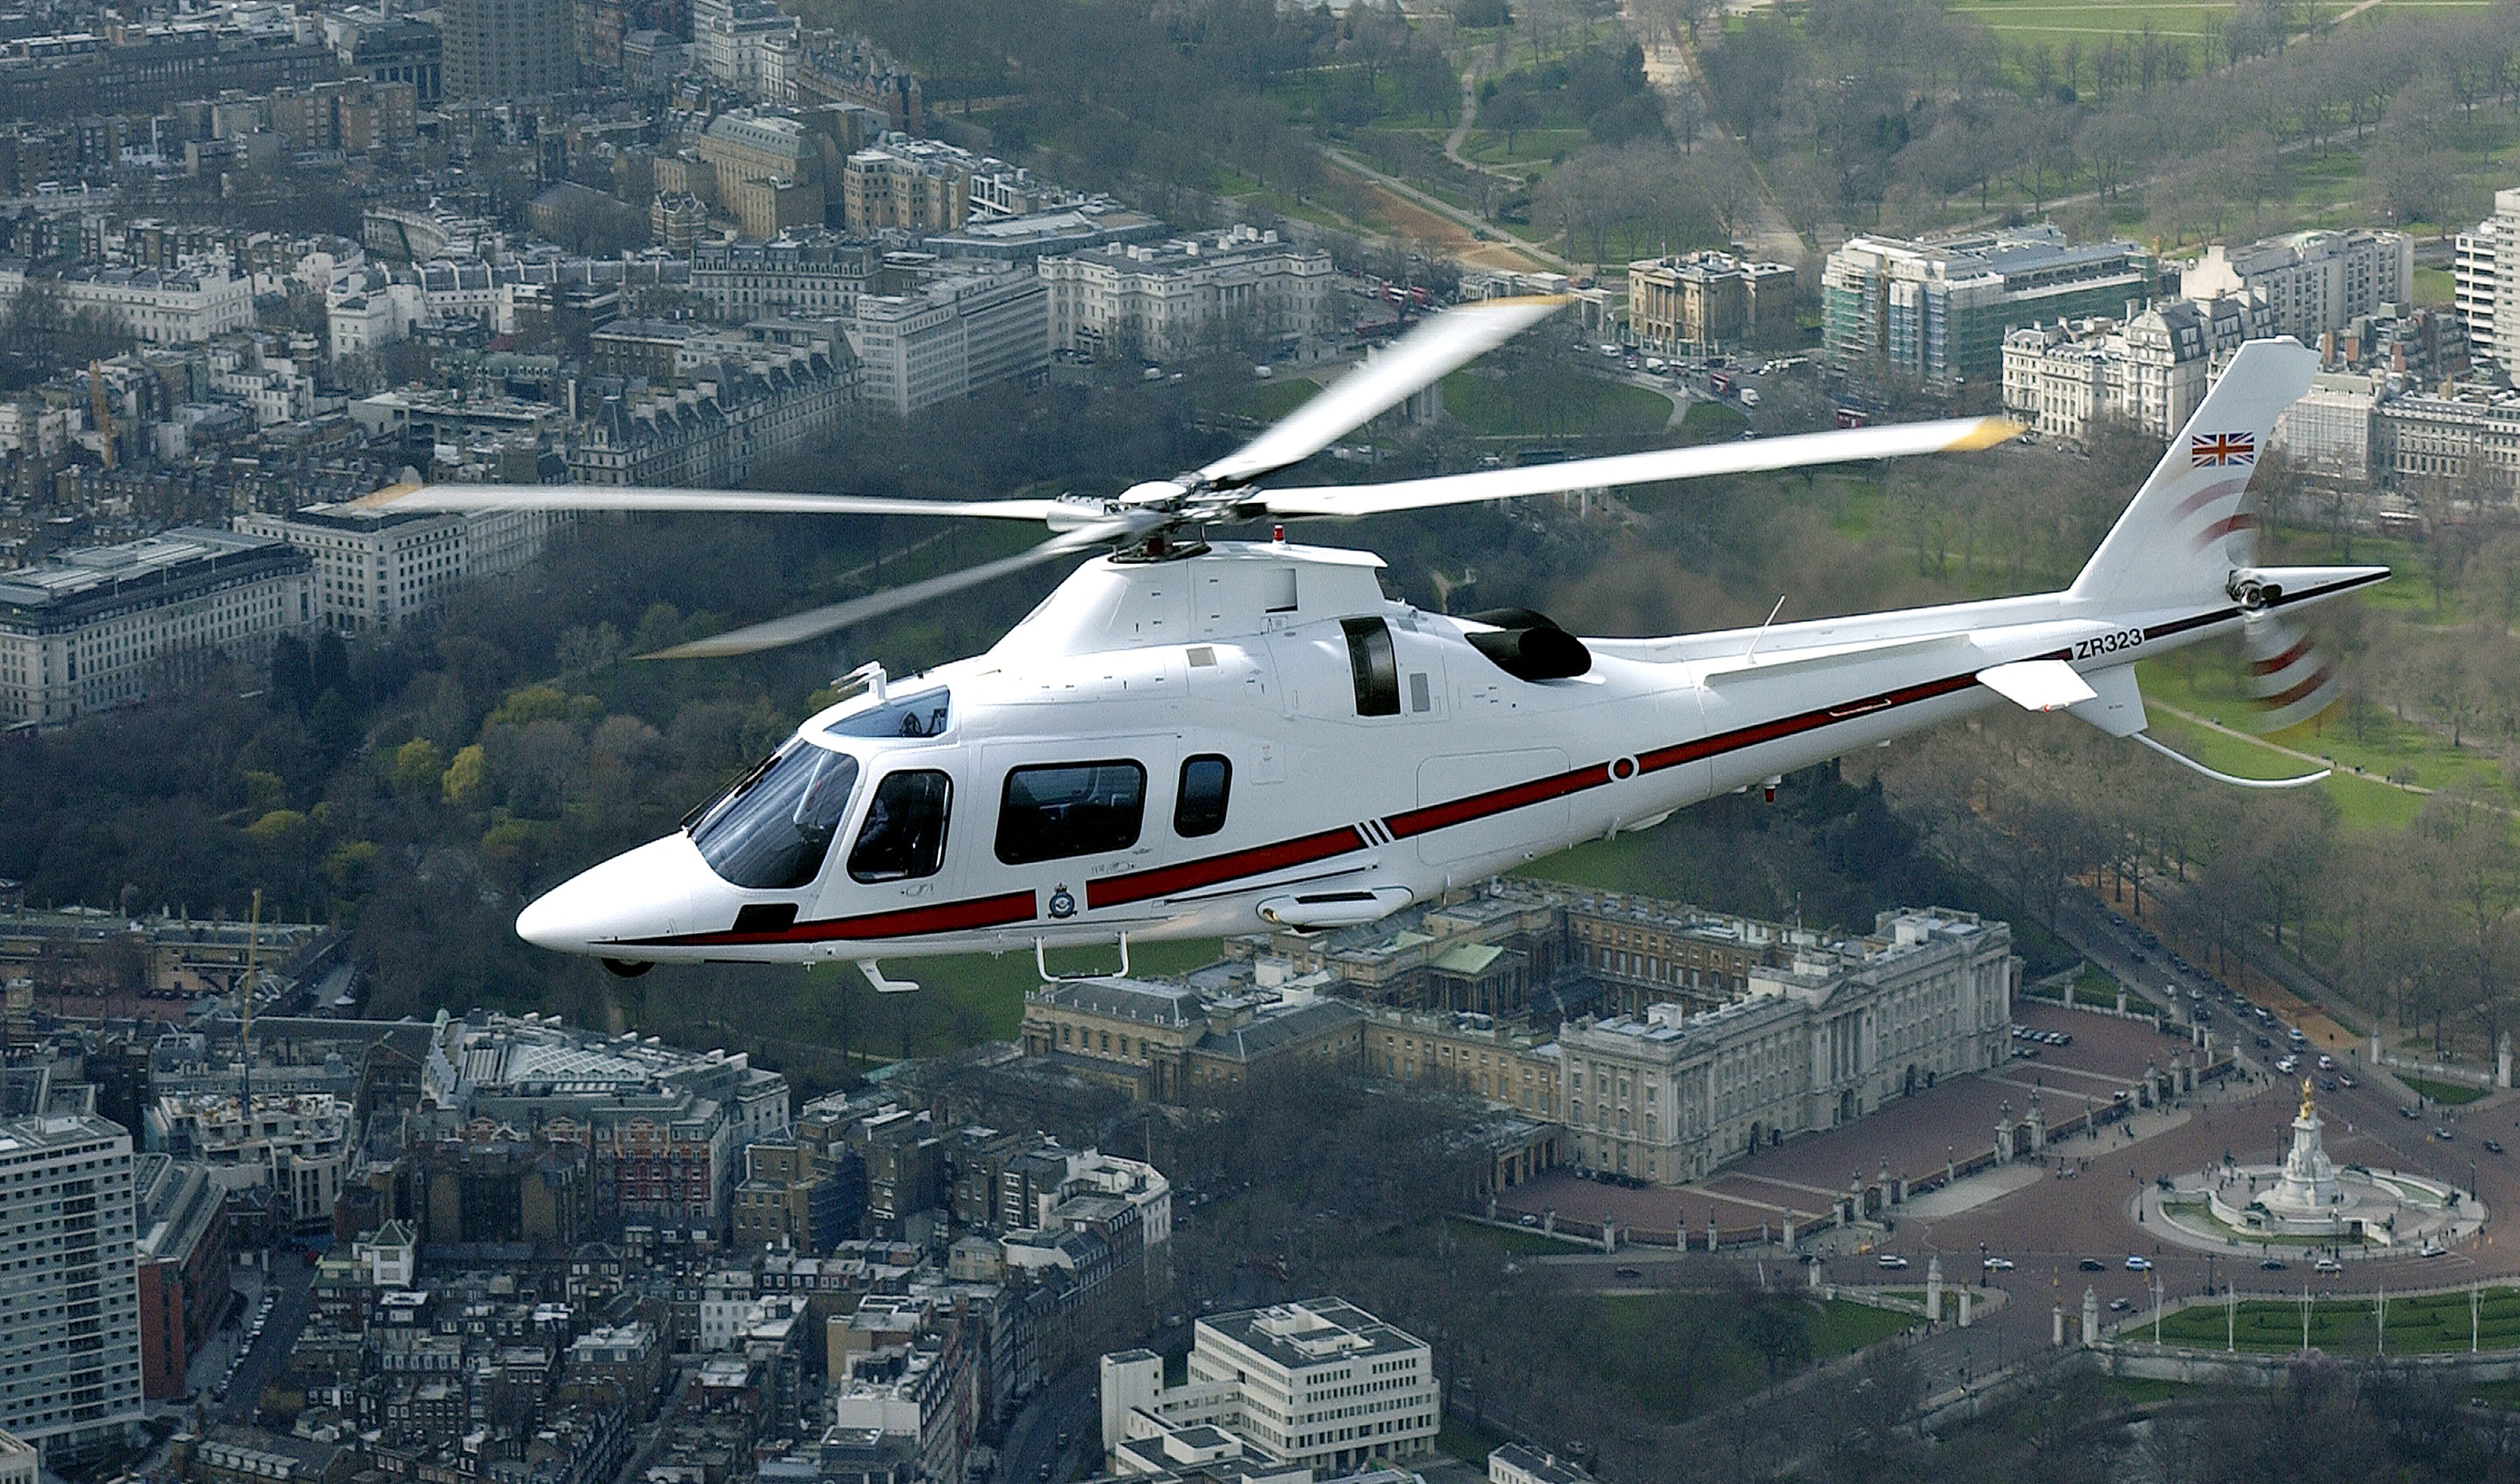 russia helicopter with File Raf Agusta Aw109 Mod 45146969 on Pictures 1 further Kamov Ka 52 063 russia Russian Air Force 179262 large additionally Bond 50 Part Iii You Only Live Twice 1967 On Her Majestys Secret Service 1969 likewise Pictures chechnya also 2.